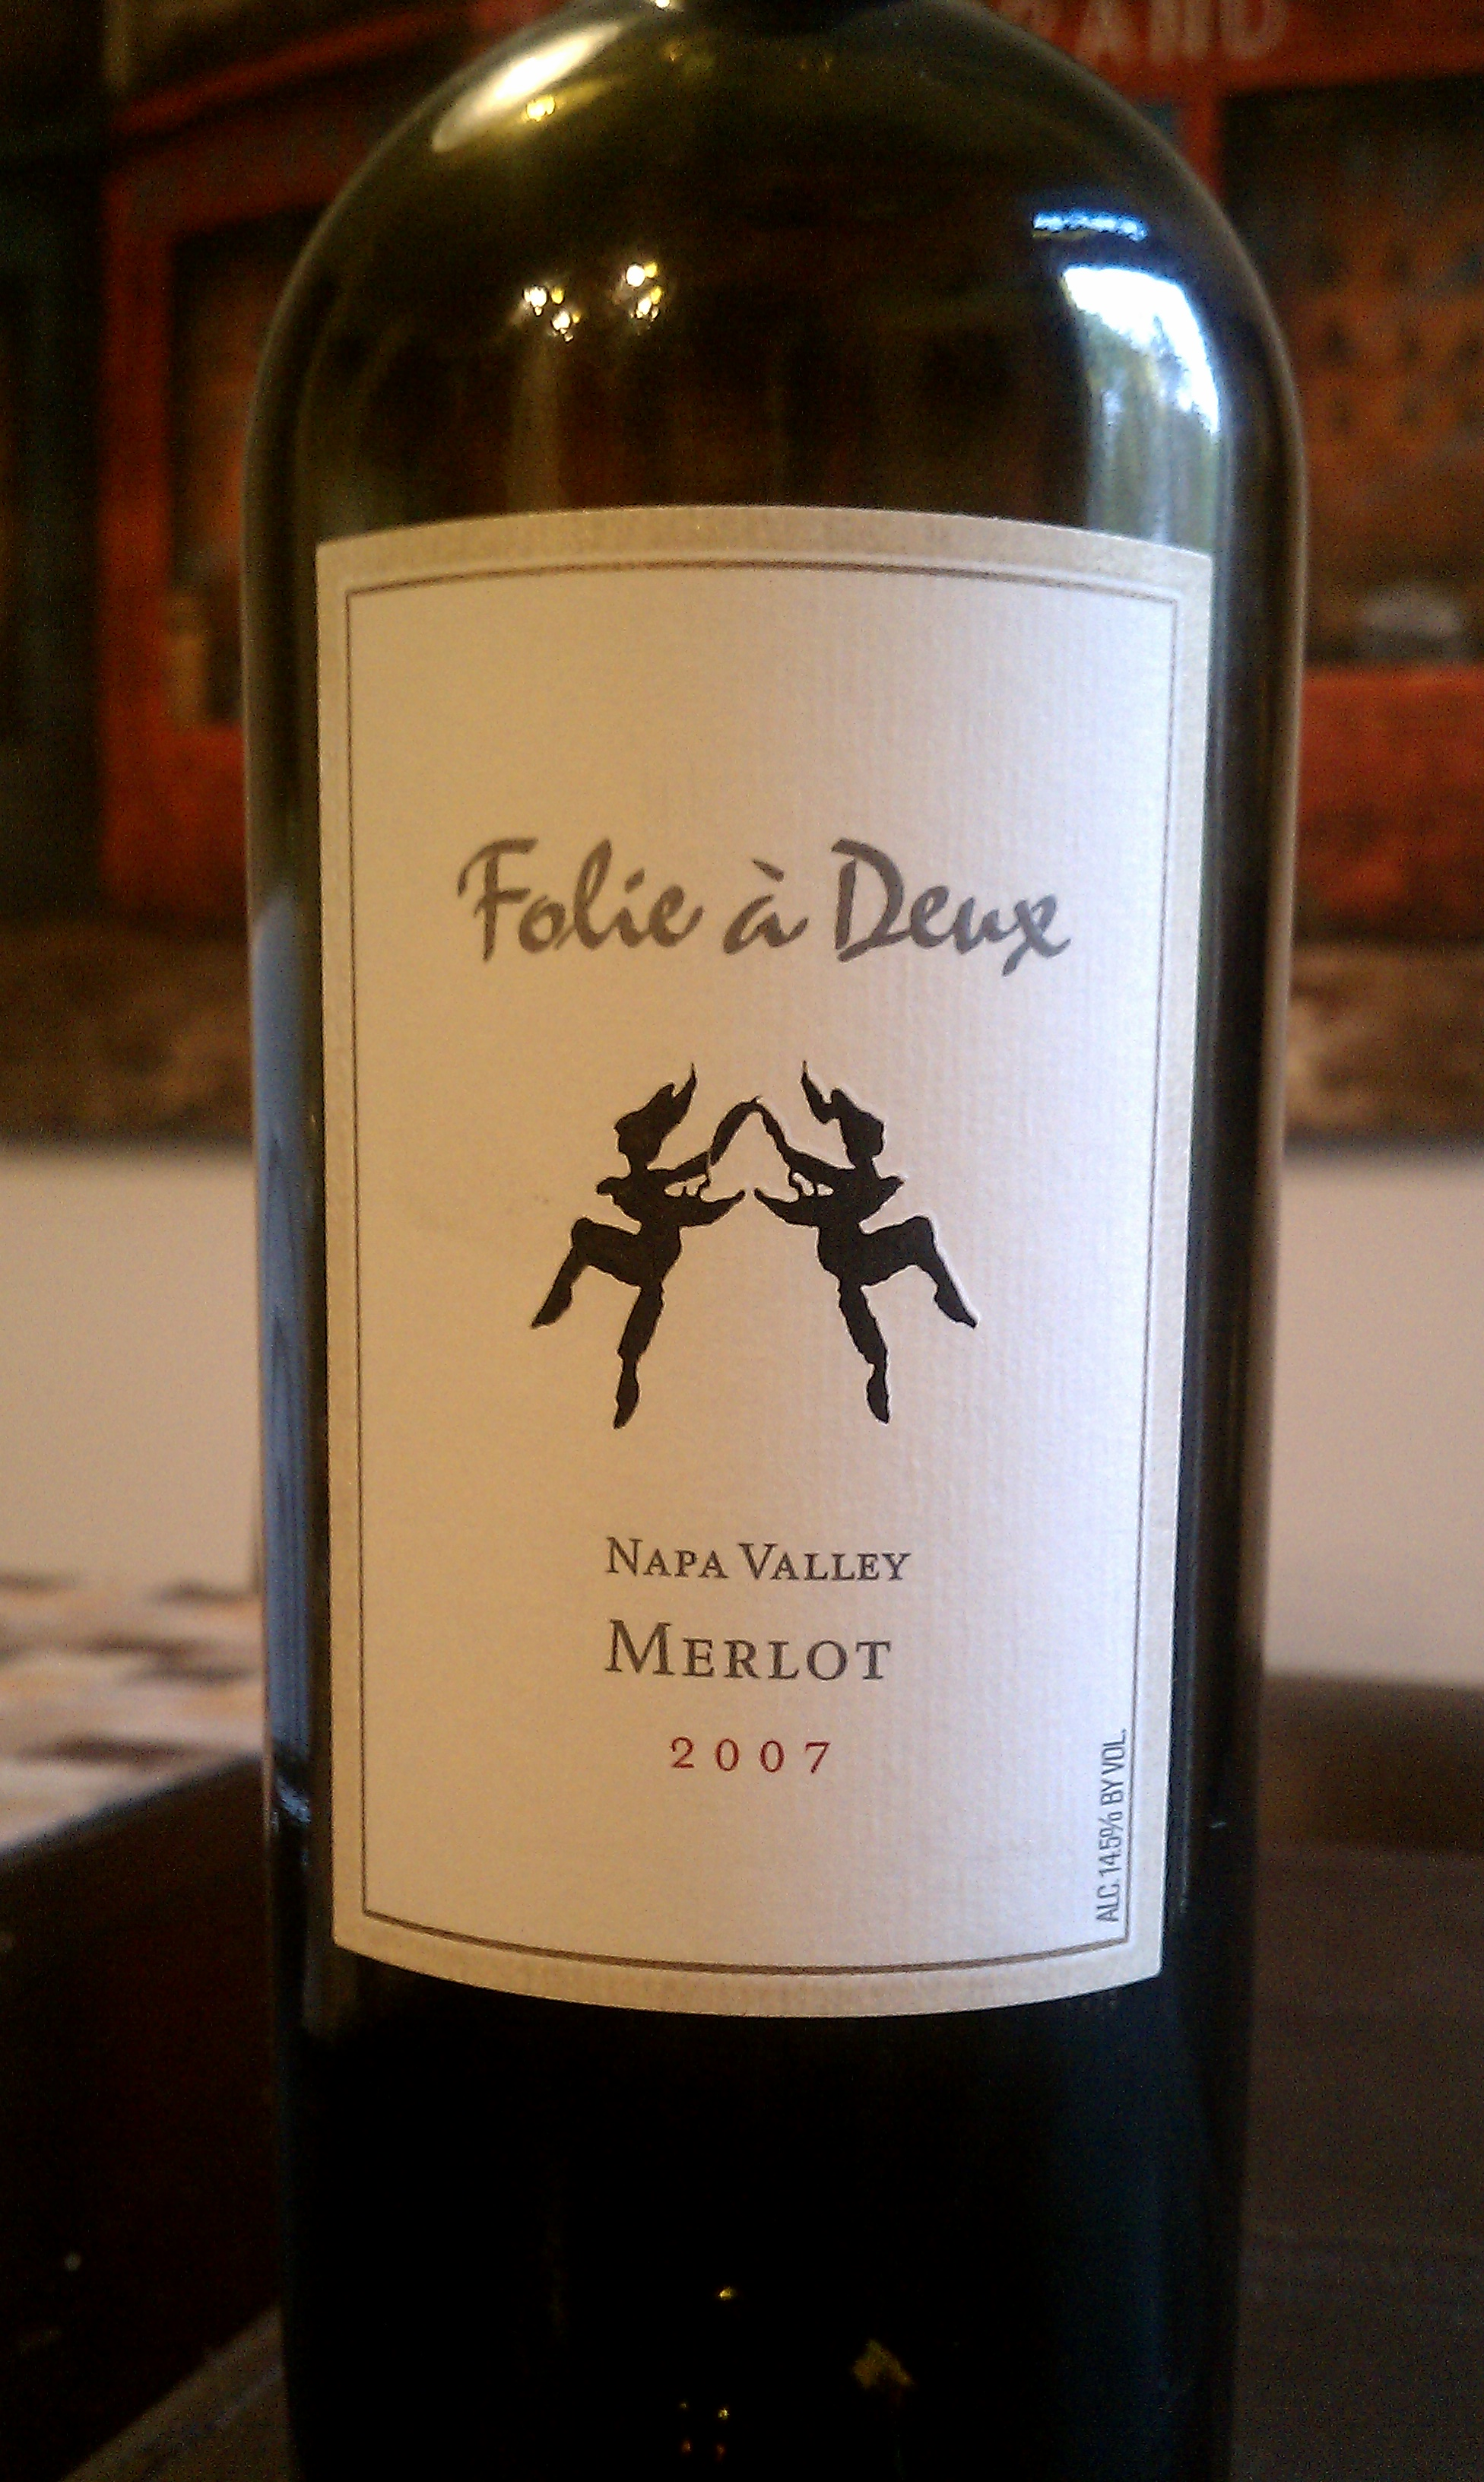 2007 Folie a Deux Merlot from California's Napa Valley